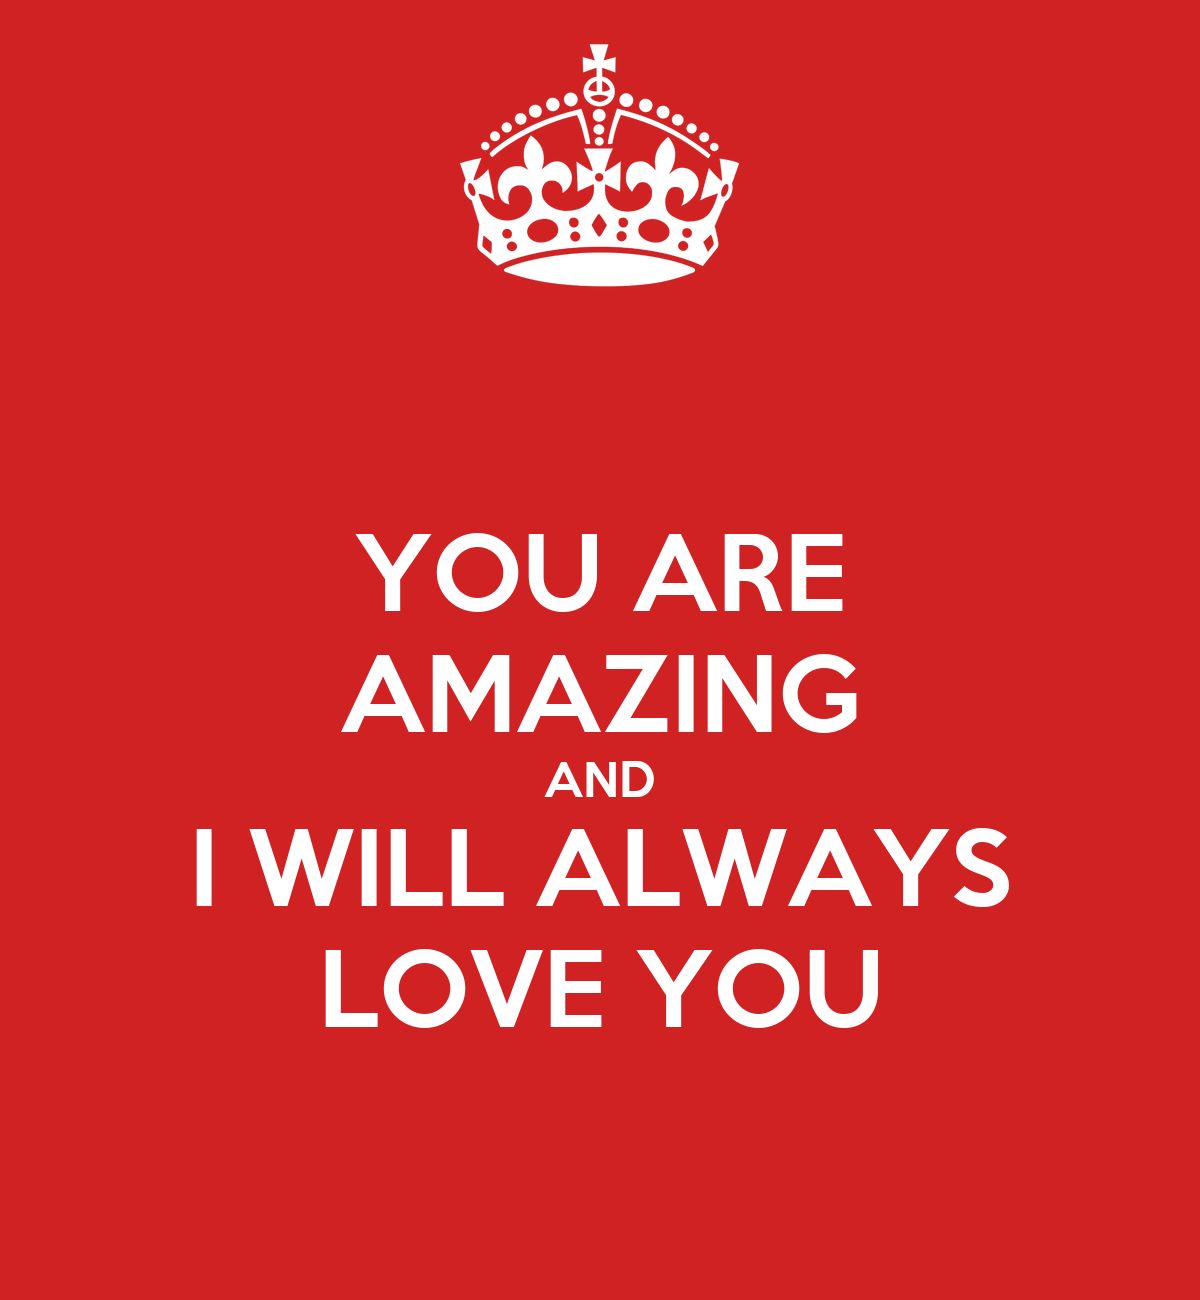 You Are Amazing: YOU ARE AMAZING AND I WILL ALWAYS LOVE YOU Poster